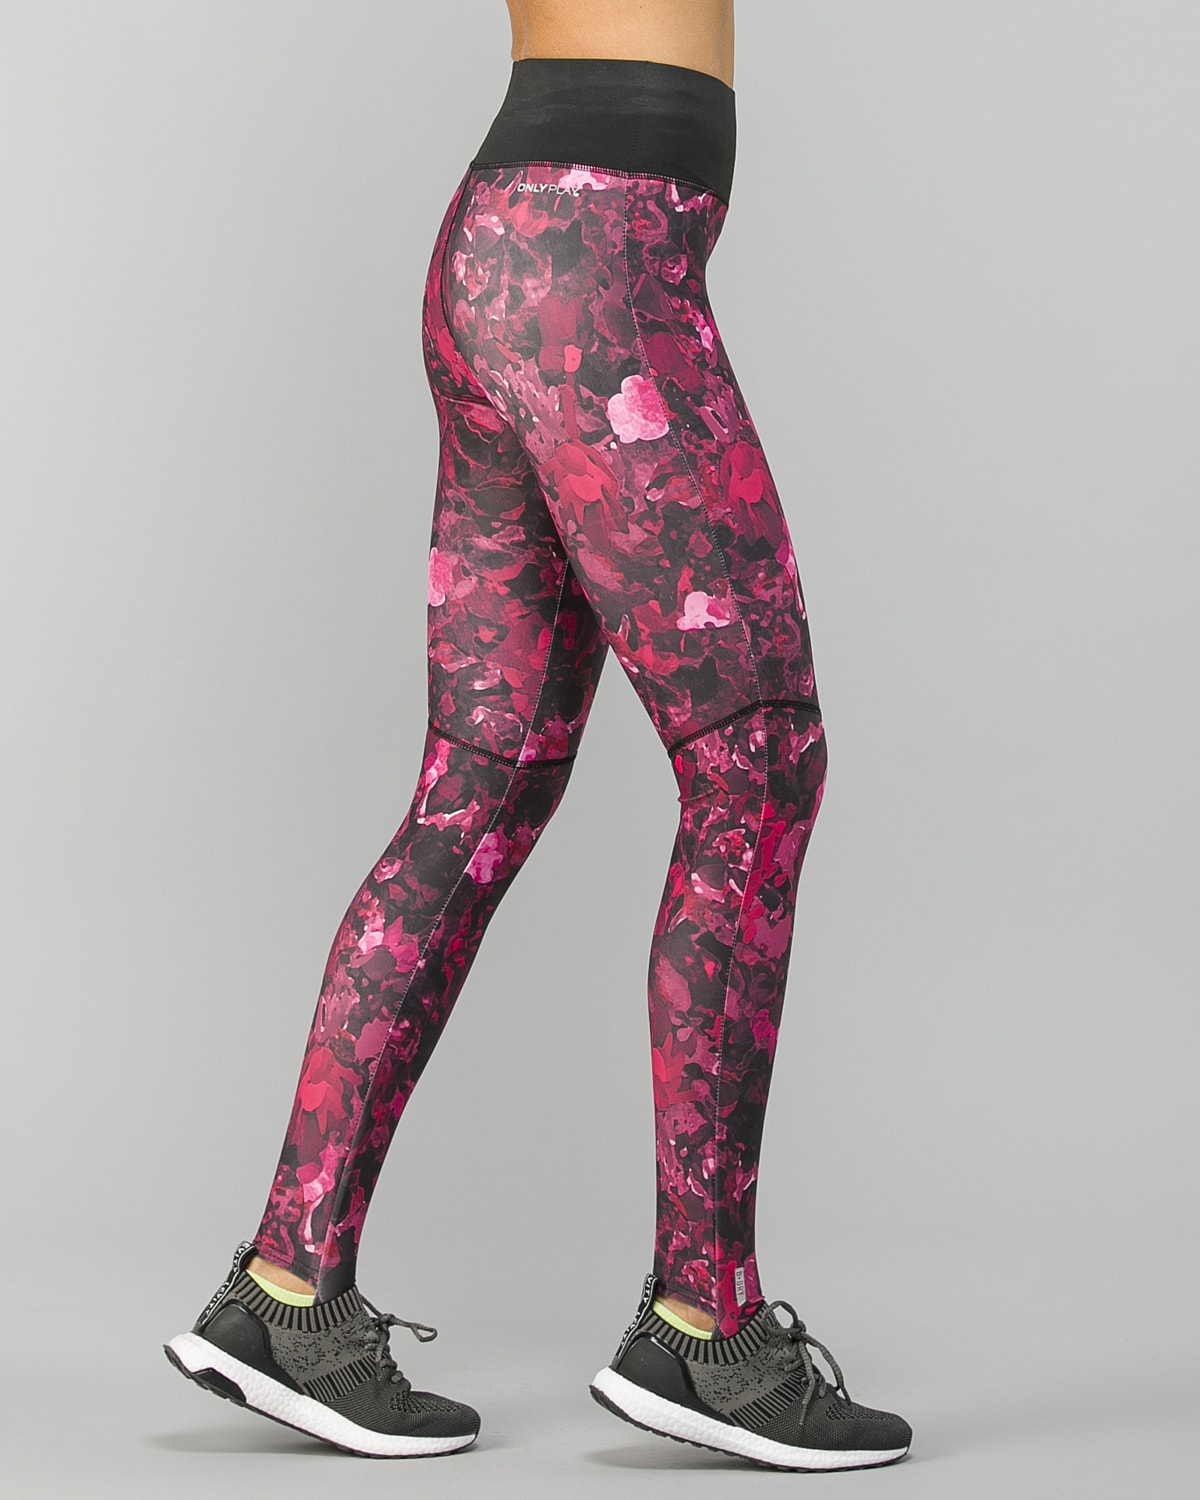 Only-Play-Petal-Yoga-Aop-Training-Tights–Rhododendron3